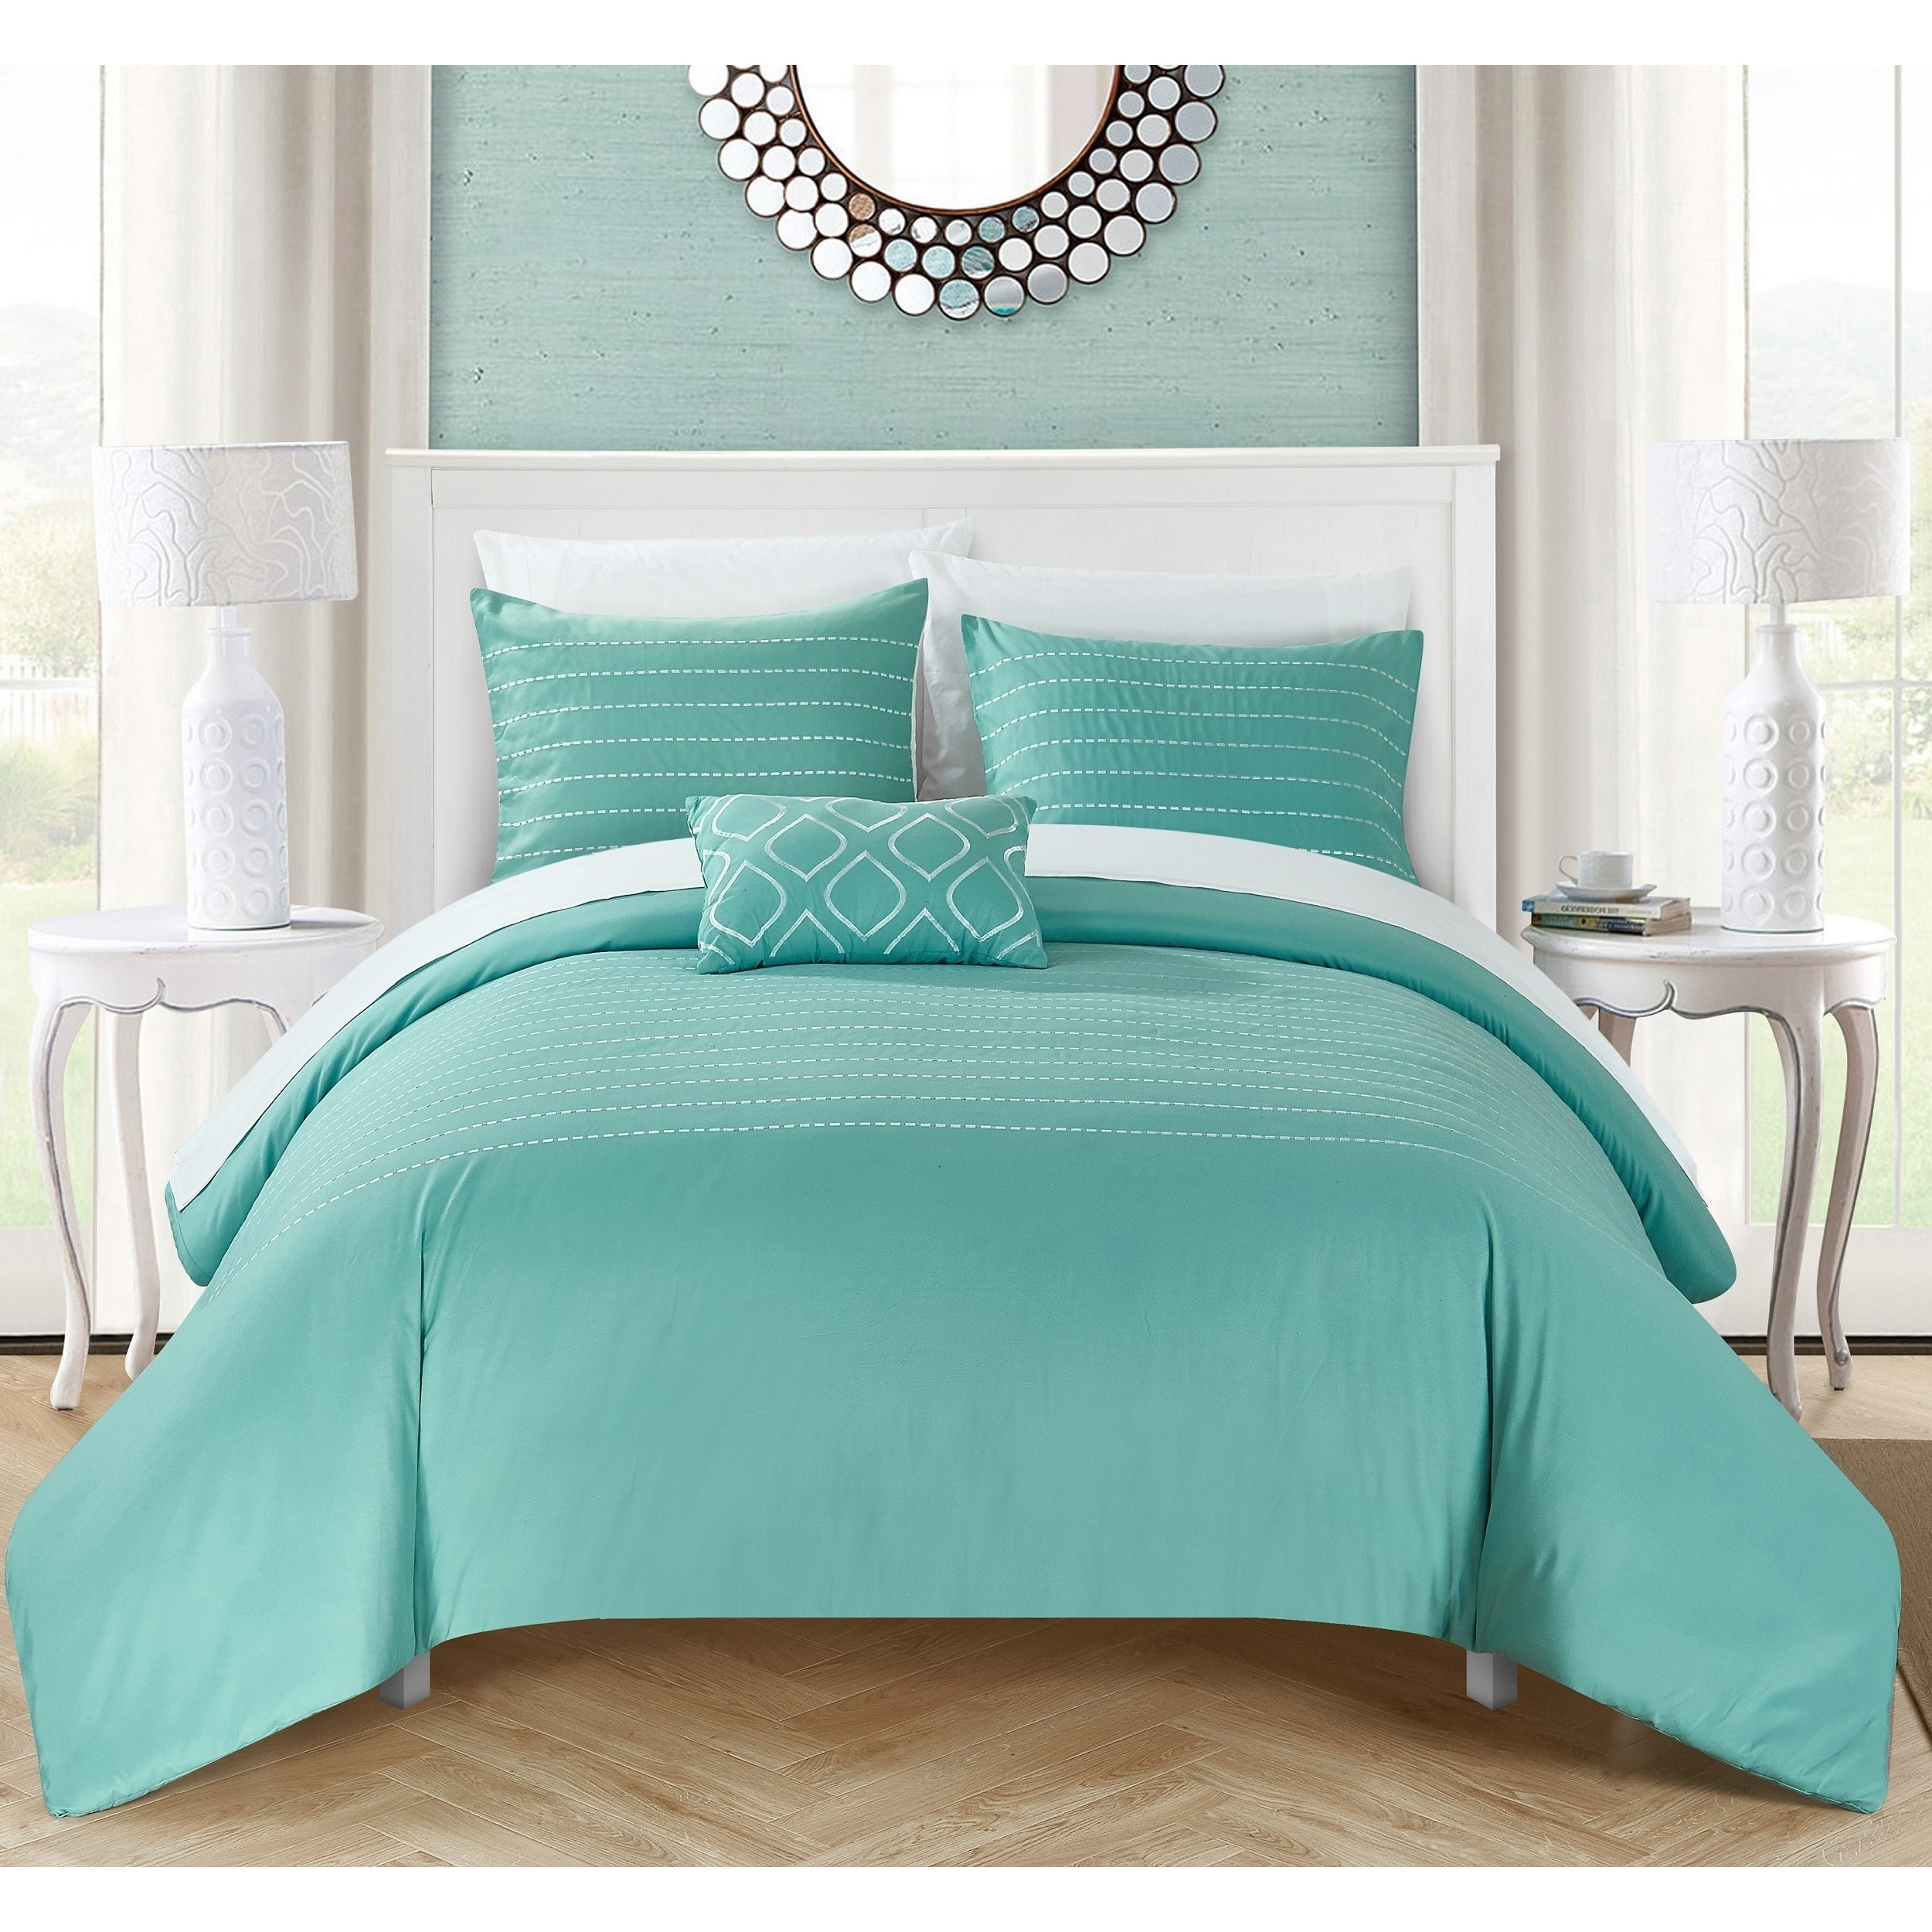 Chic Home Kingston 8 Piece Turquoise Bed in a Bag Duvet Set Free